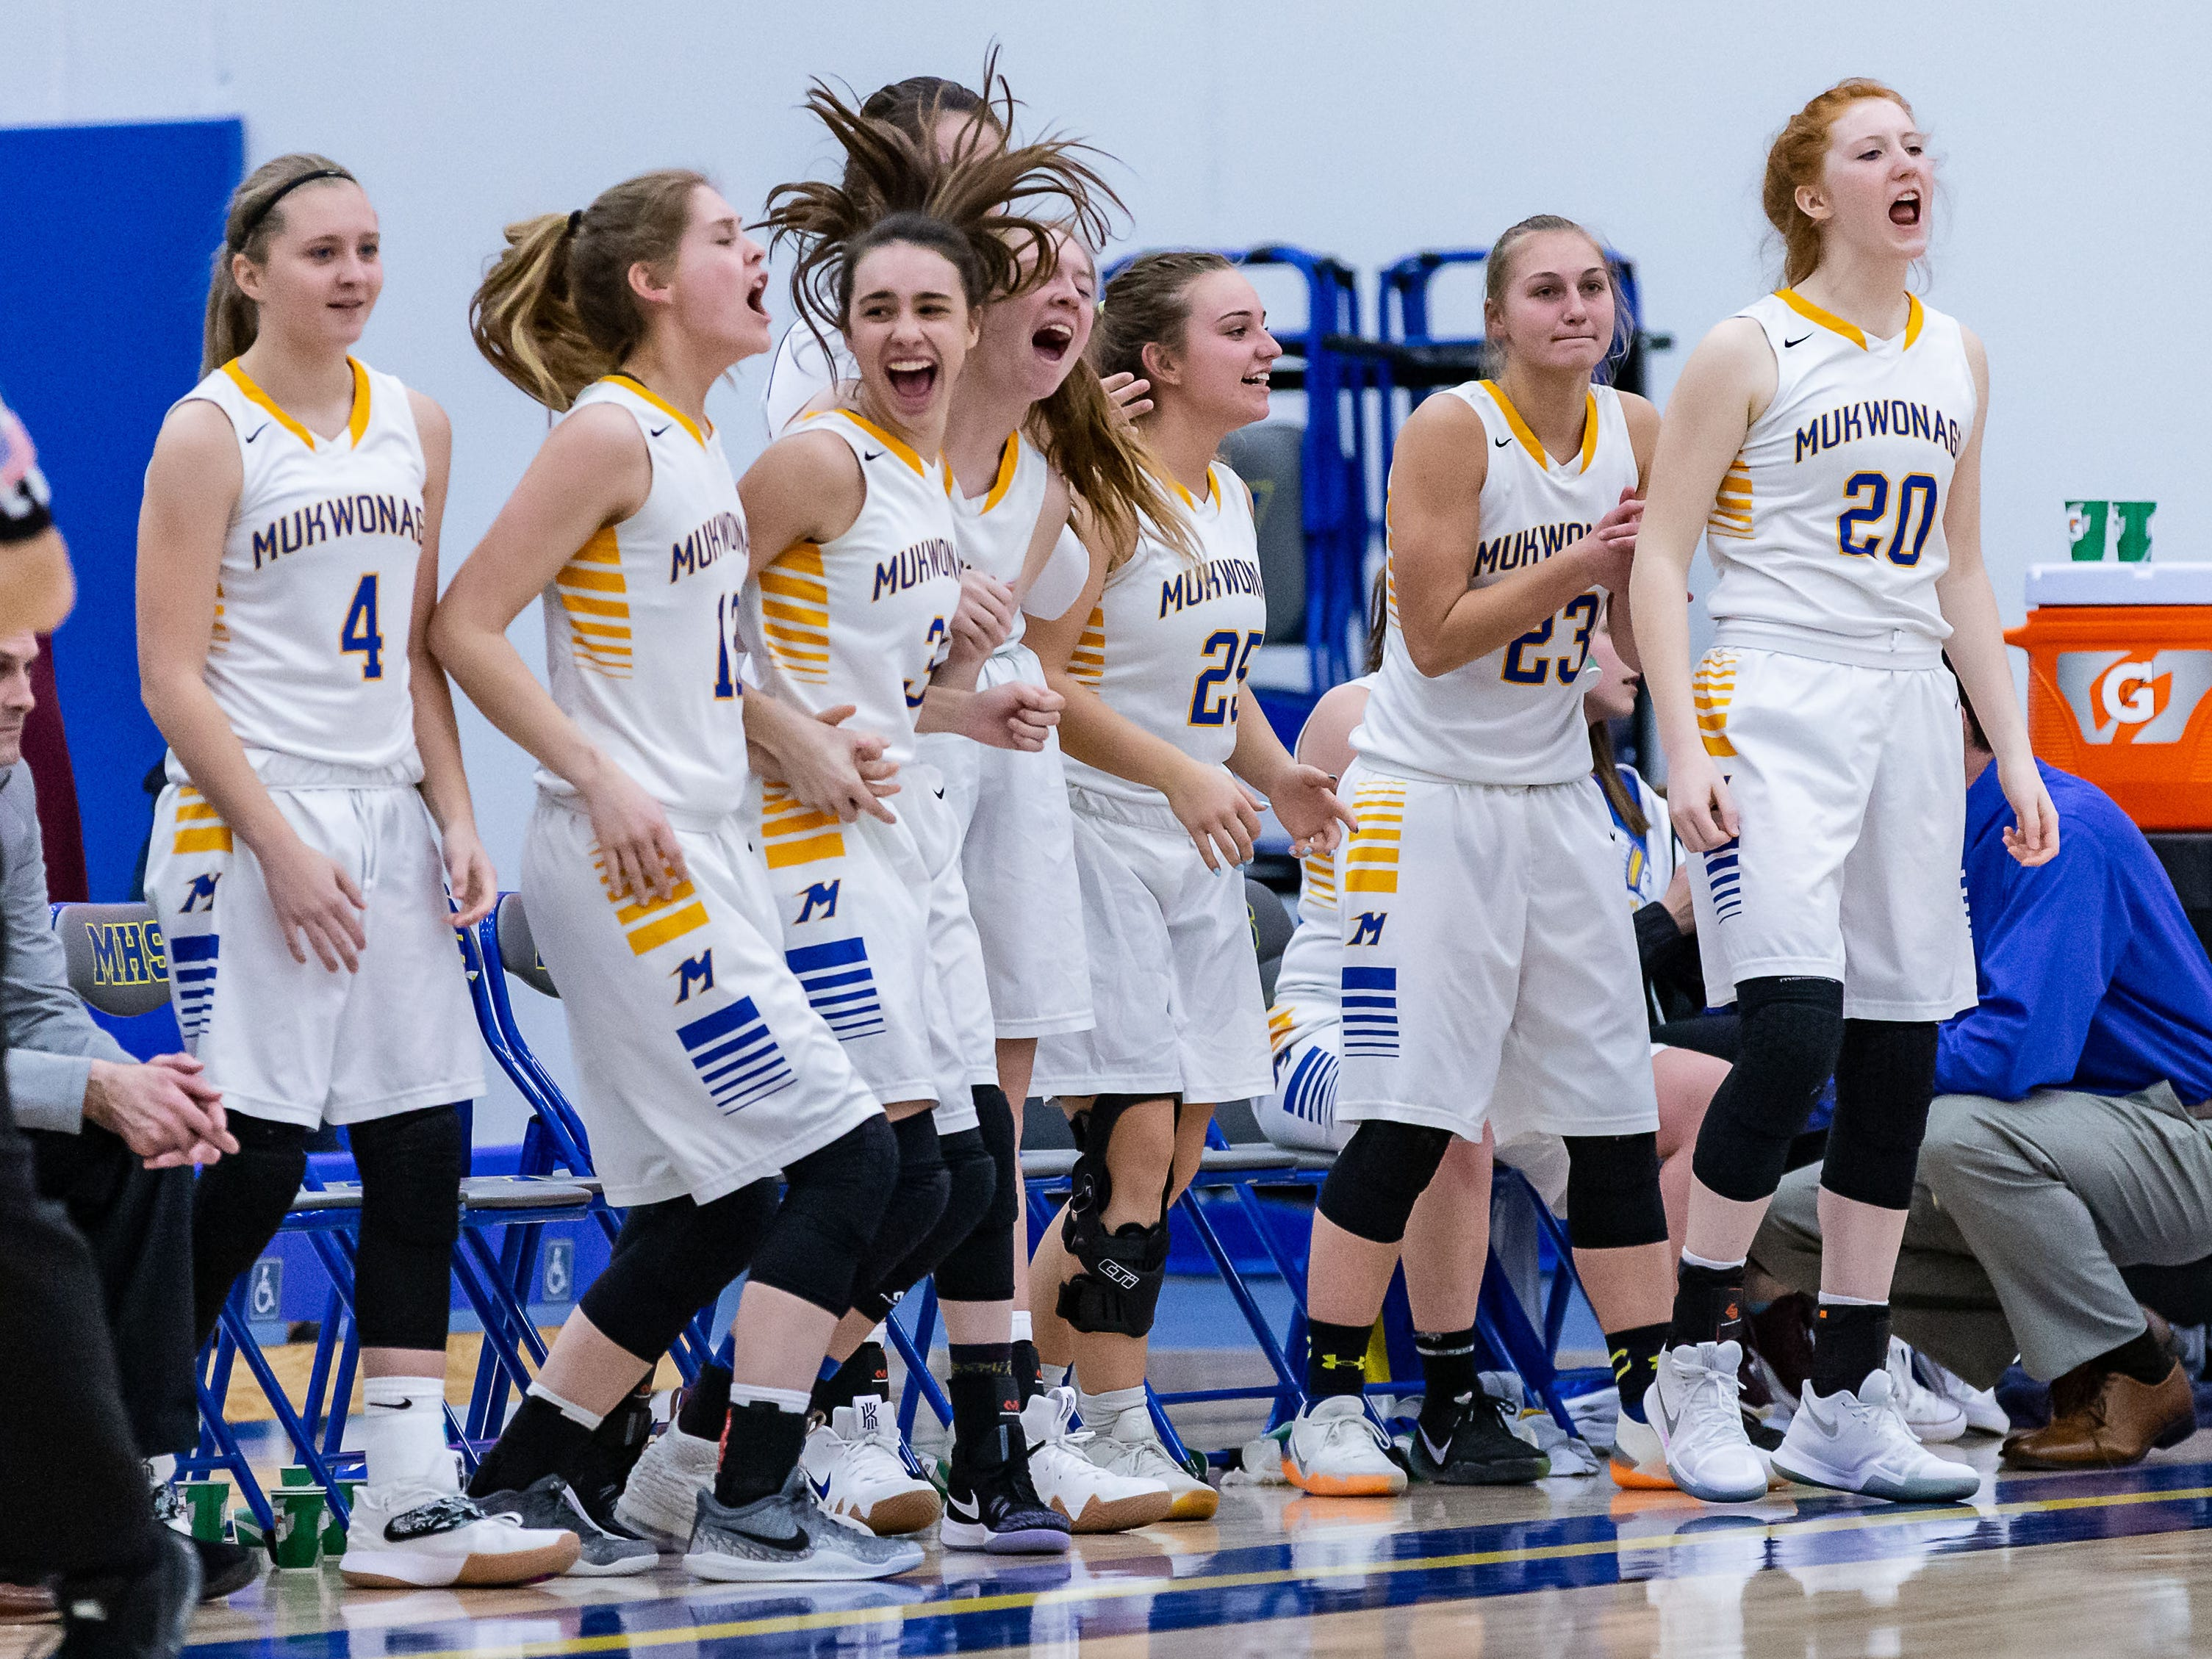 Mukwonago players celebrate a long three-pointer during the game at home against Arrowhead on Friday, Jan. 4, 2019.